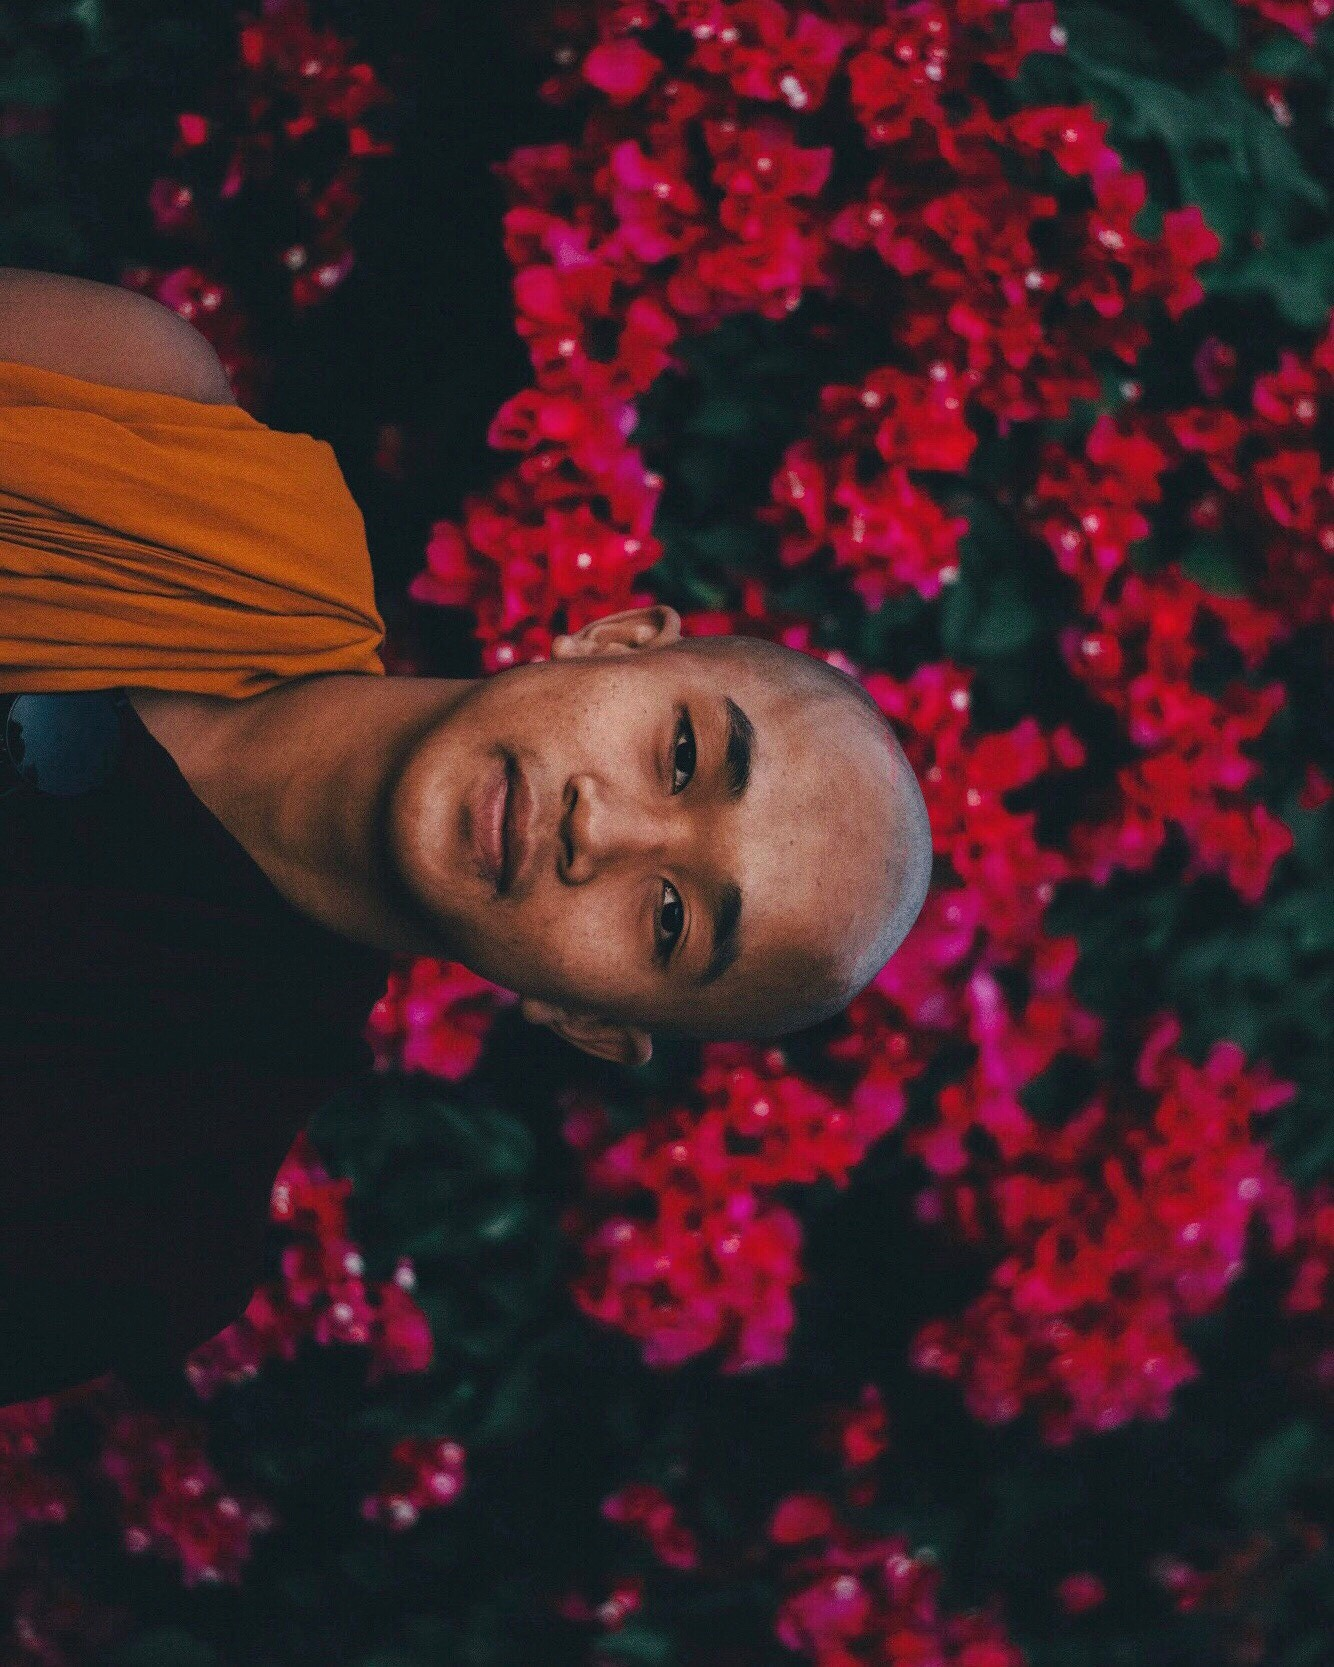 Monk portrait myanmar flowers